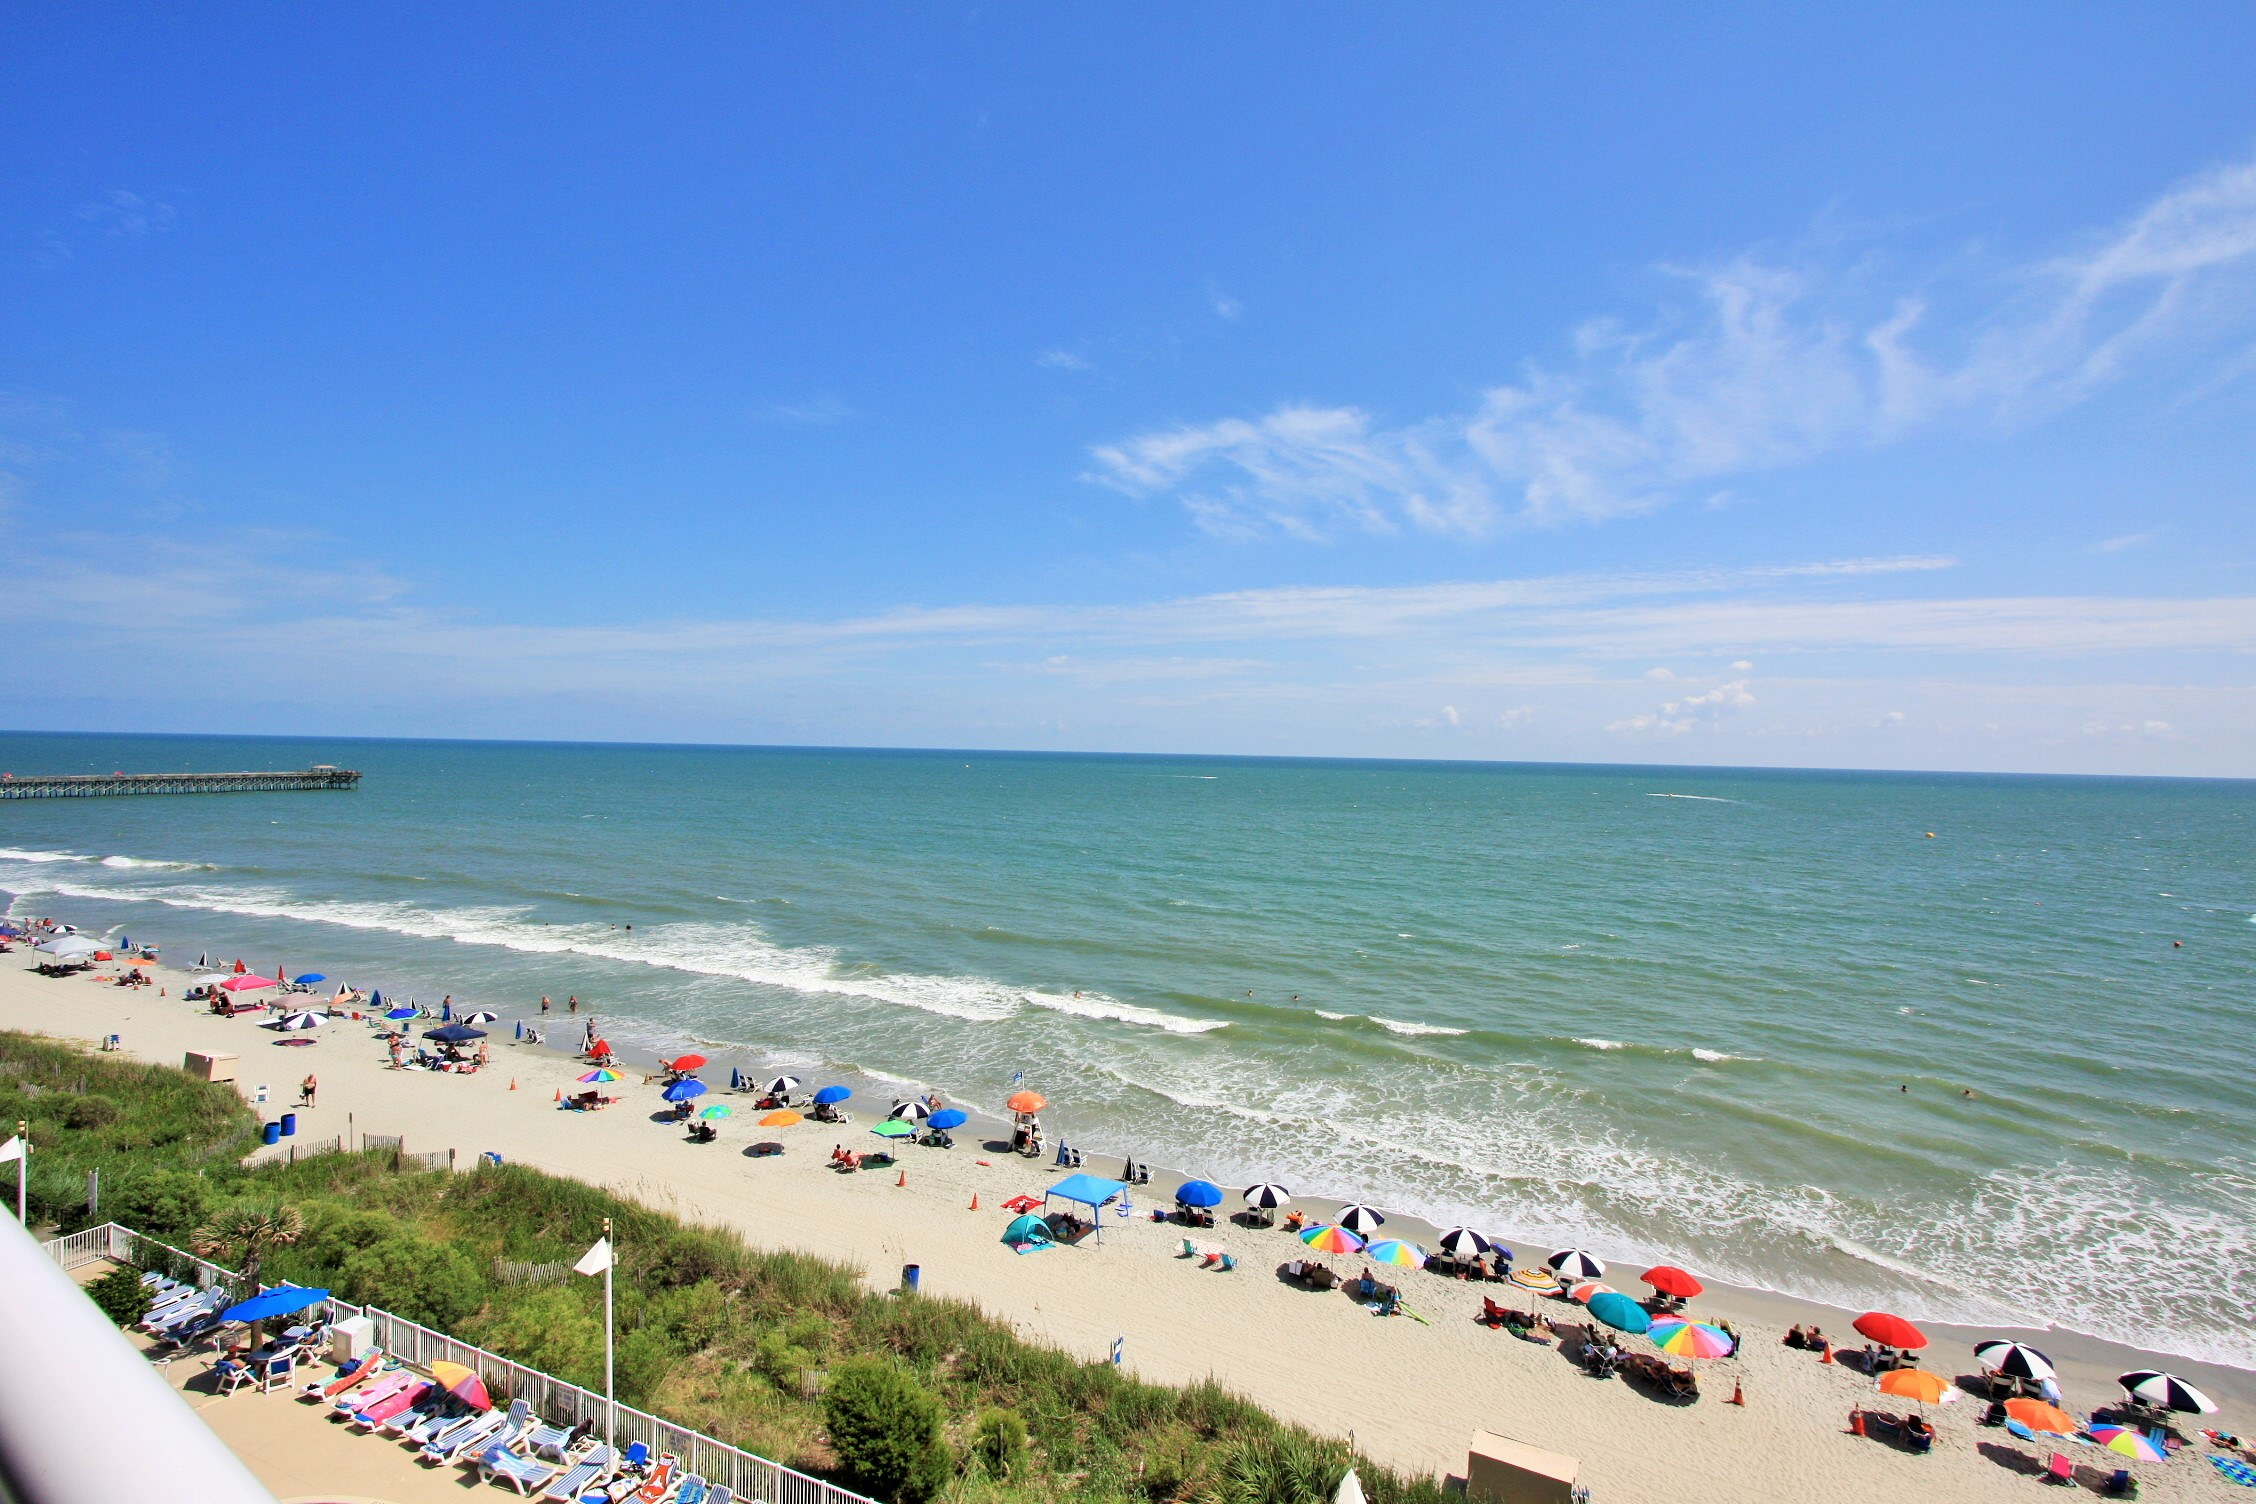 Communities of North Myrtle Beach, South Carolina Com